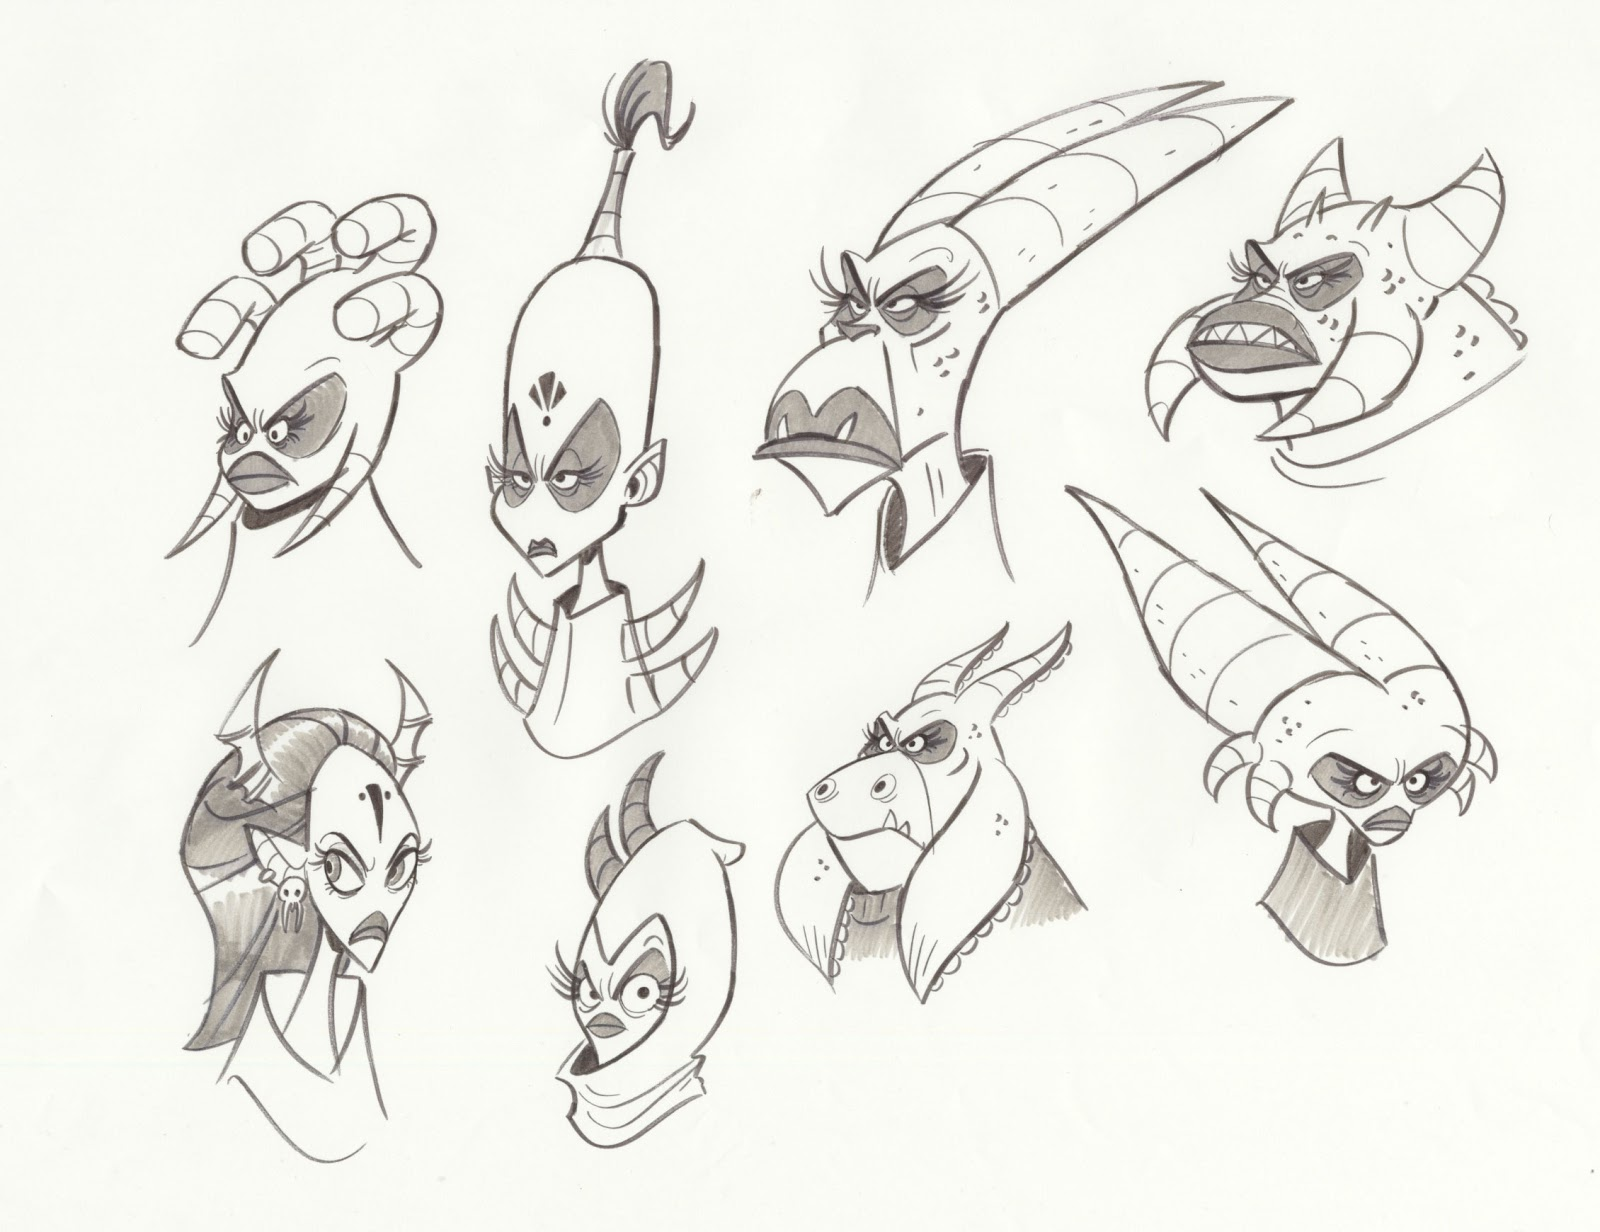 Character Design Generator : Ben balistreri monsters vs aliens tv show